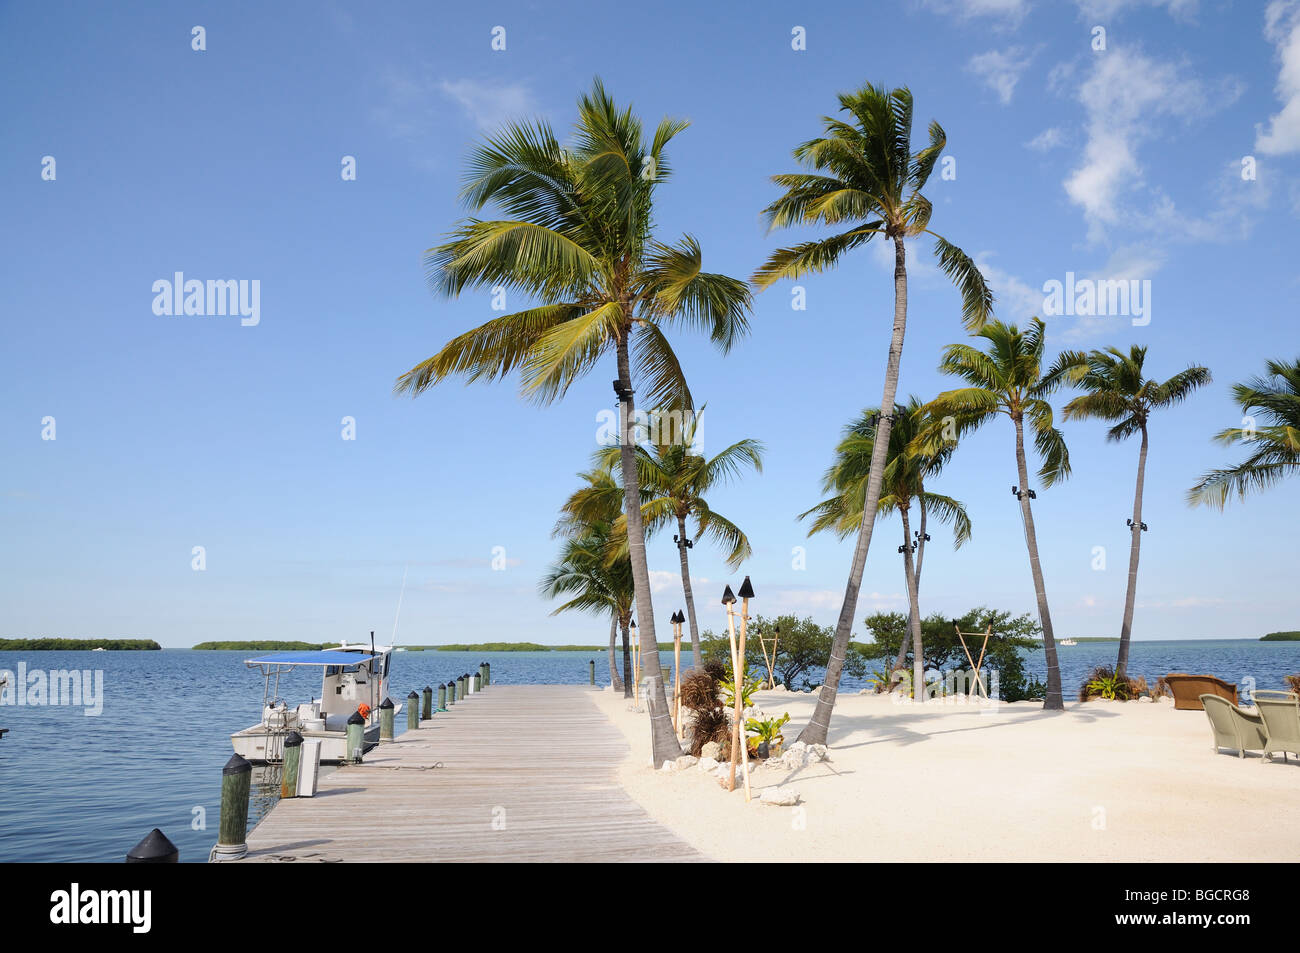 Jetty and Palm Trees on Florida Keys - Stock Image